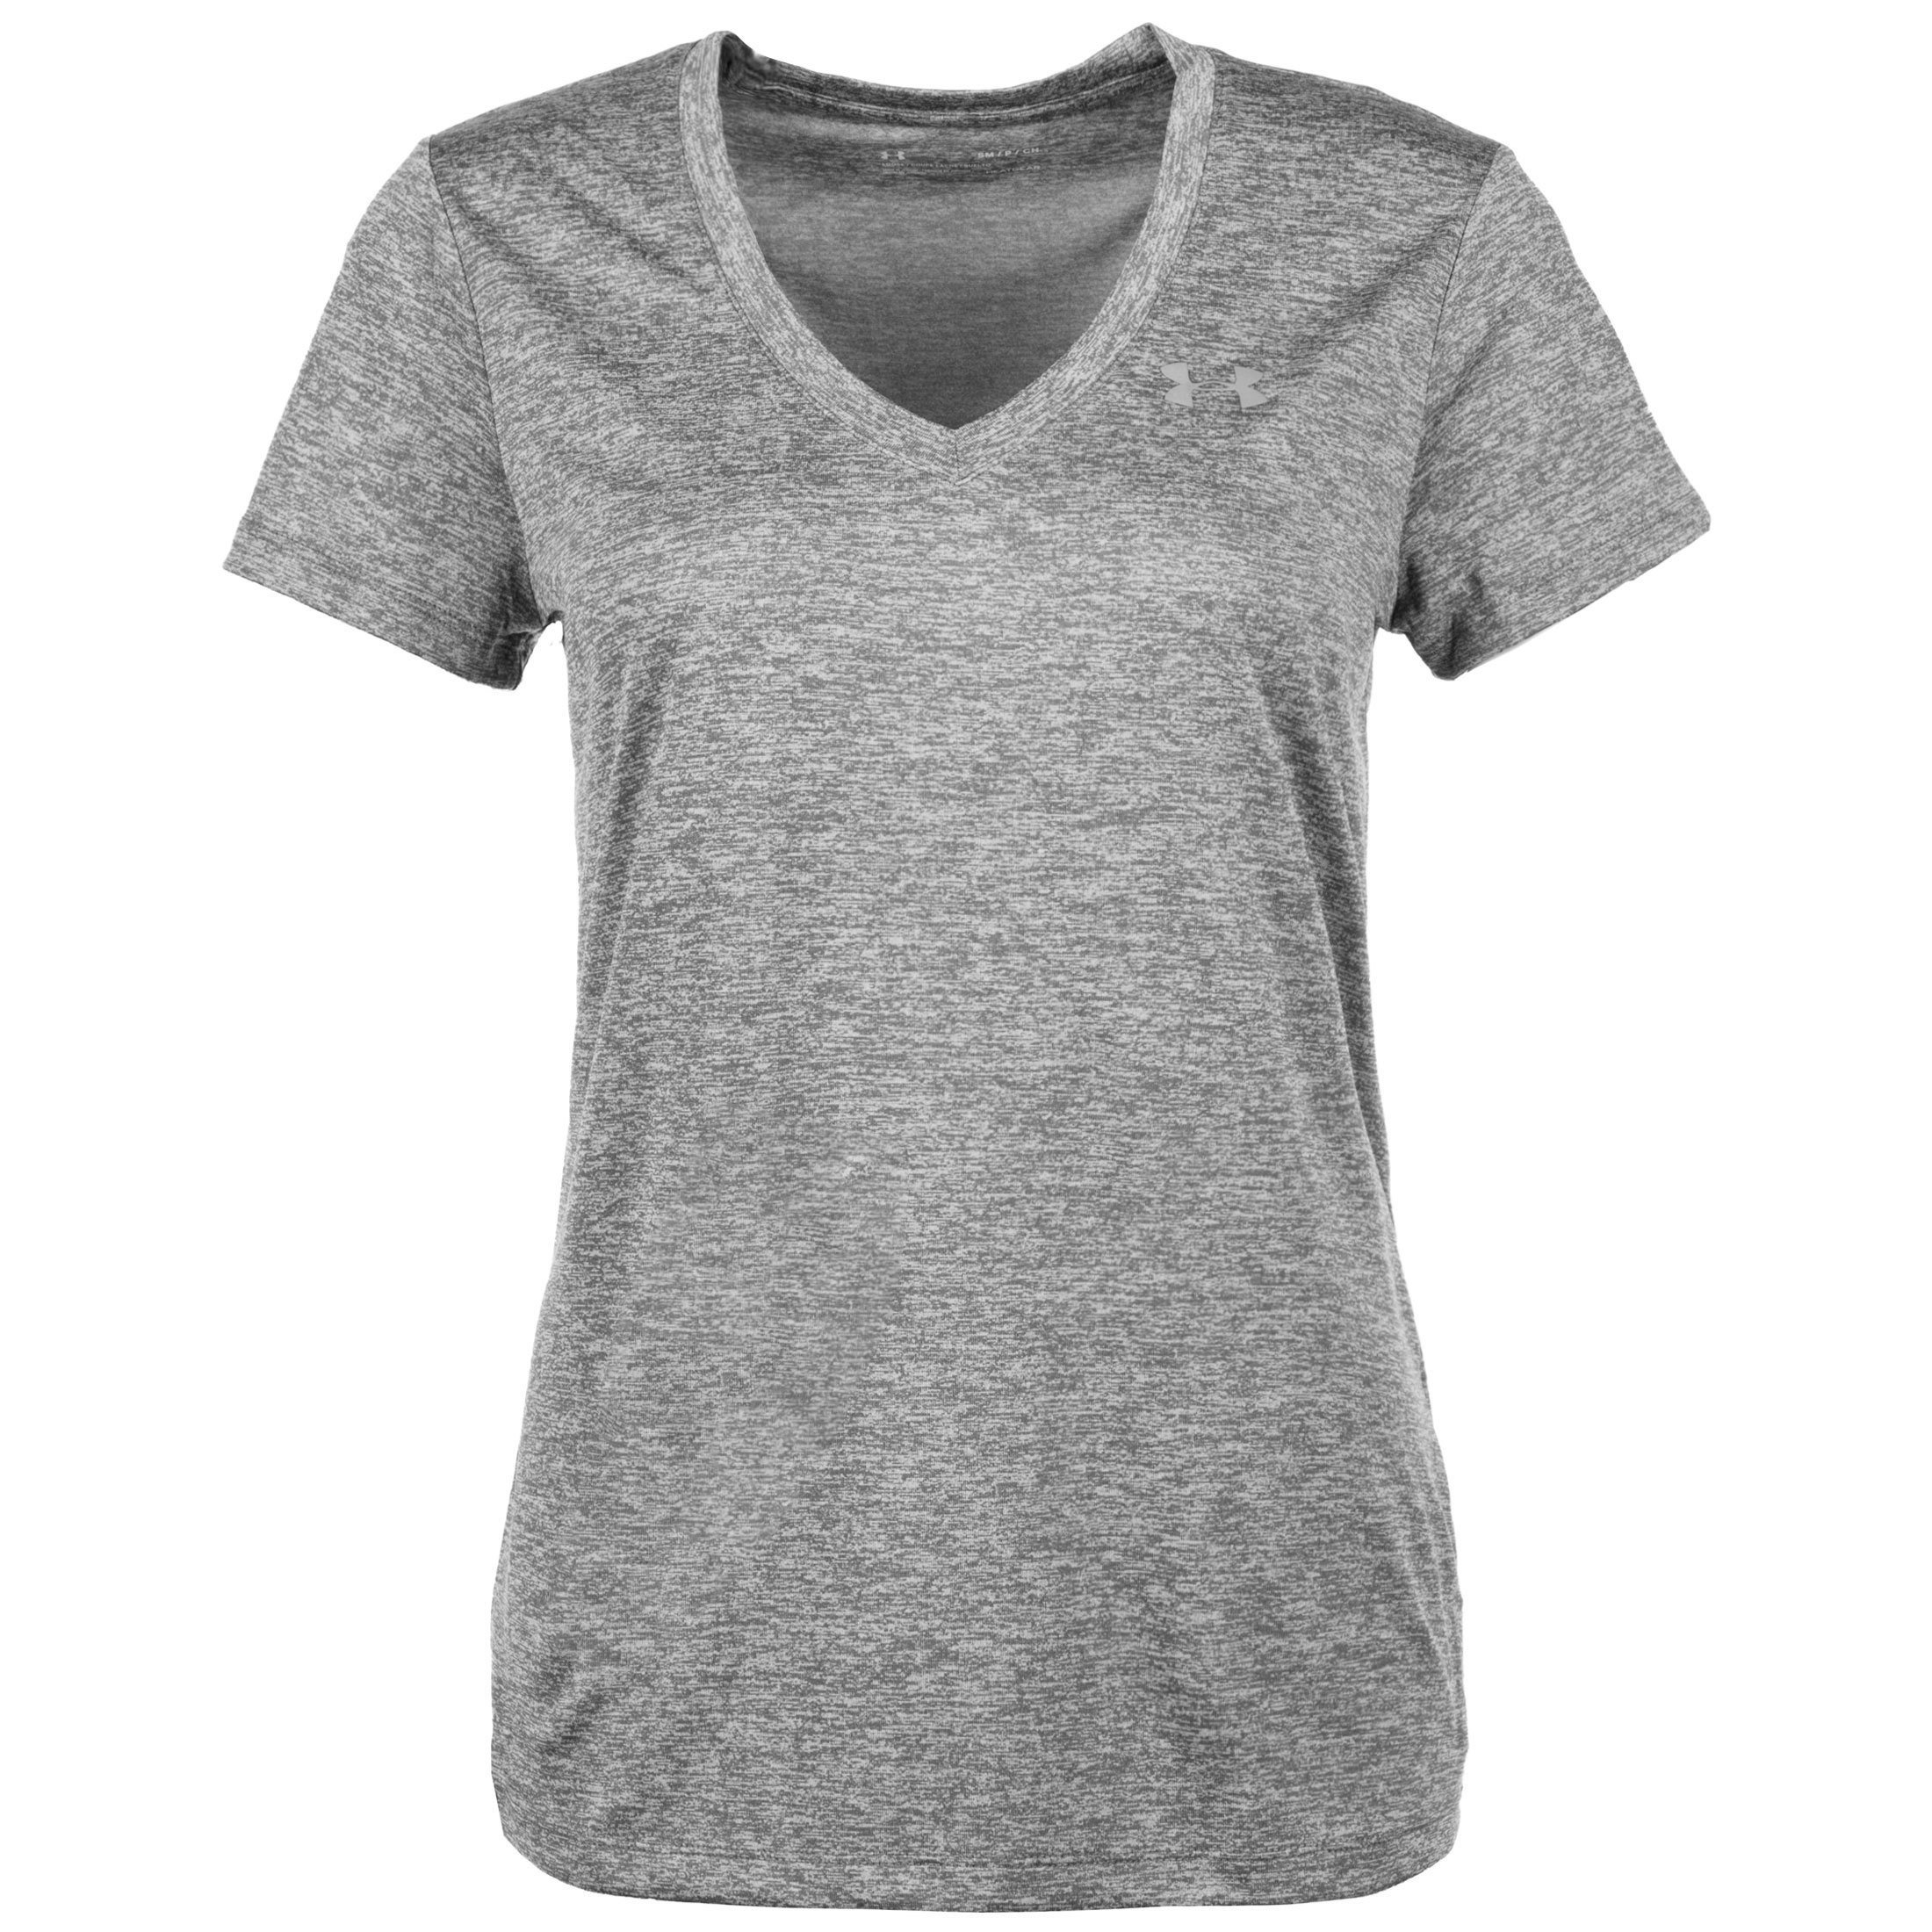 Under Armour Women's Tech Twist V-Neck, Graphite (040)/Metallic Silver, X-Small